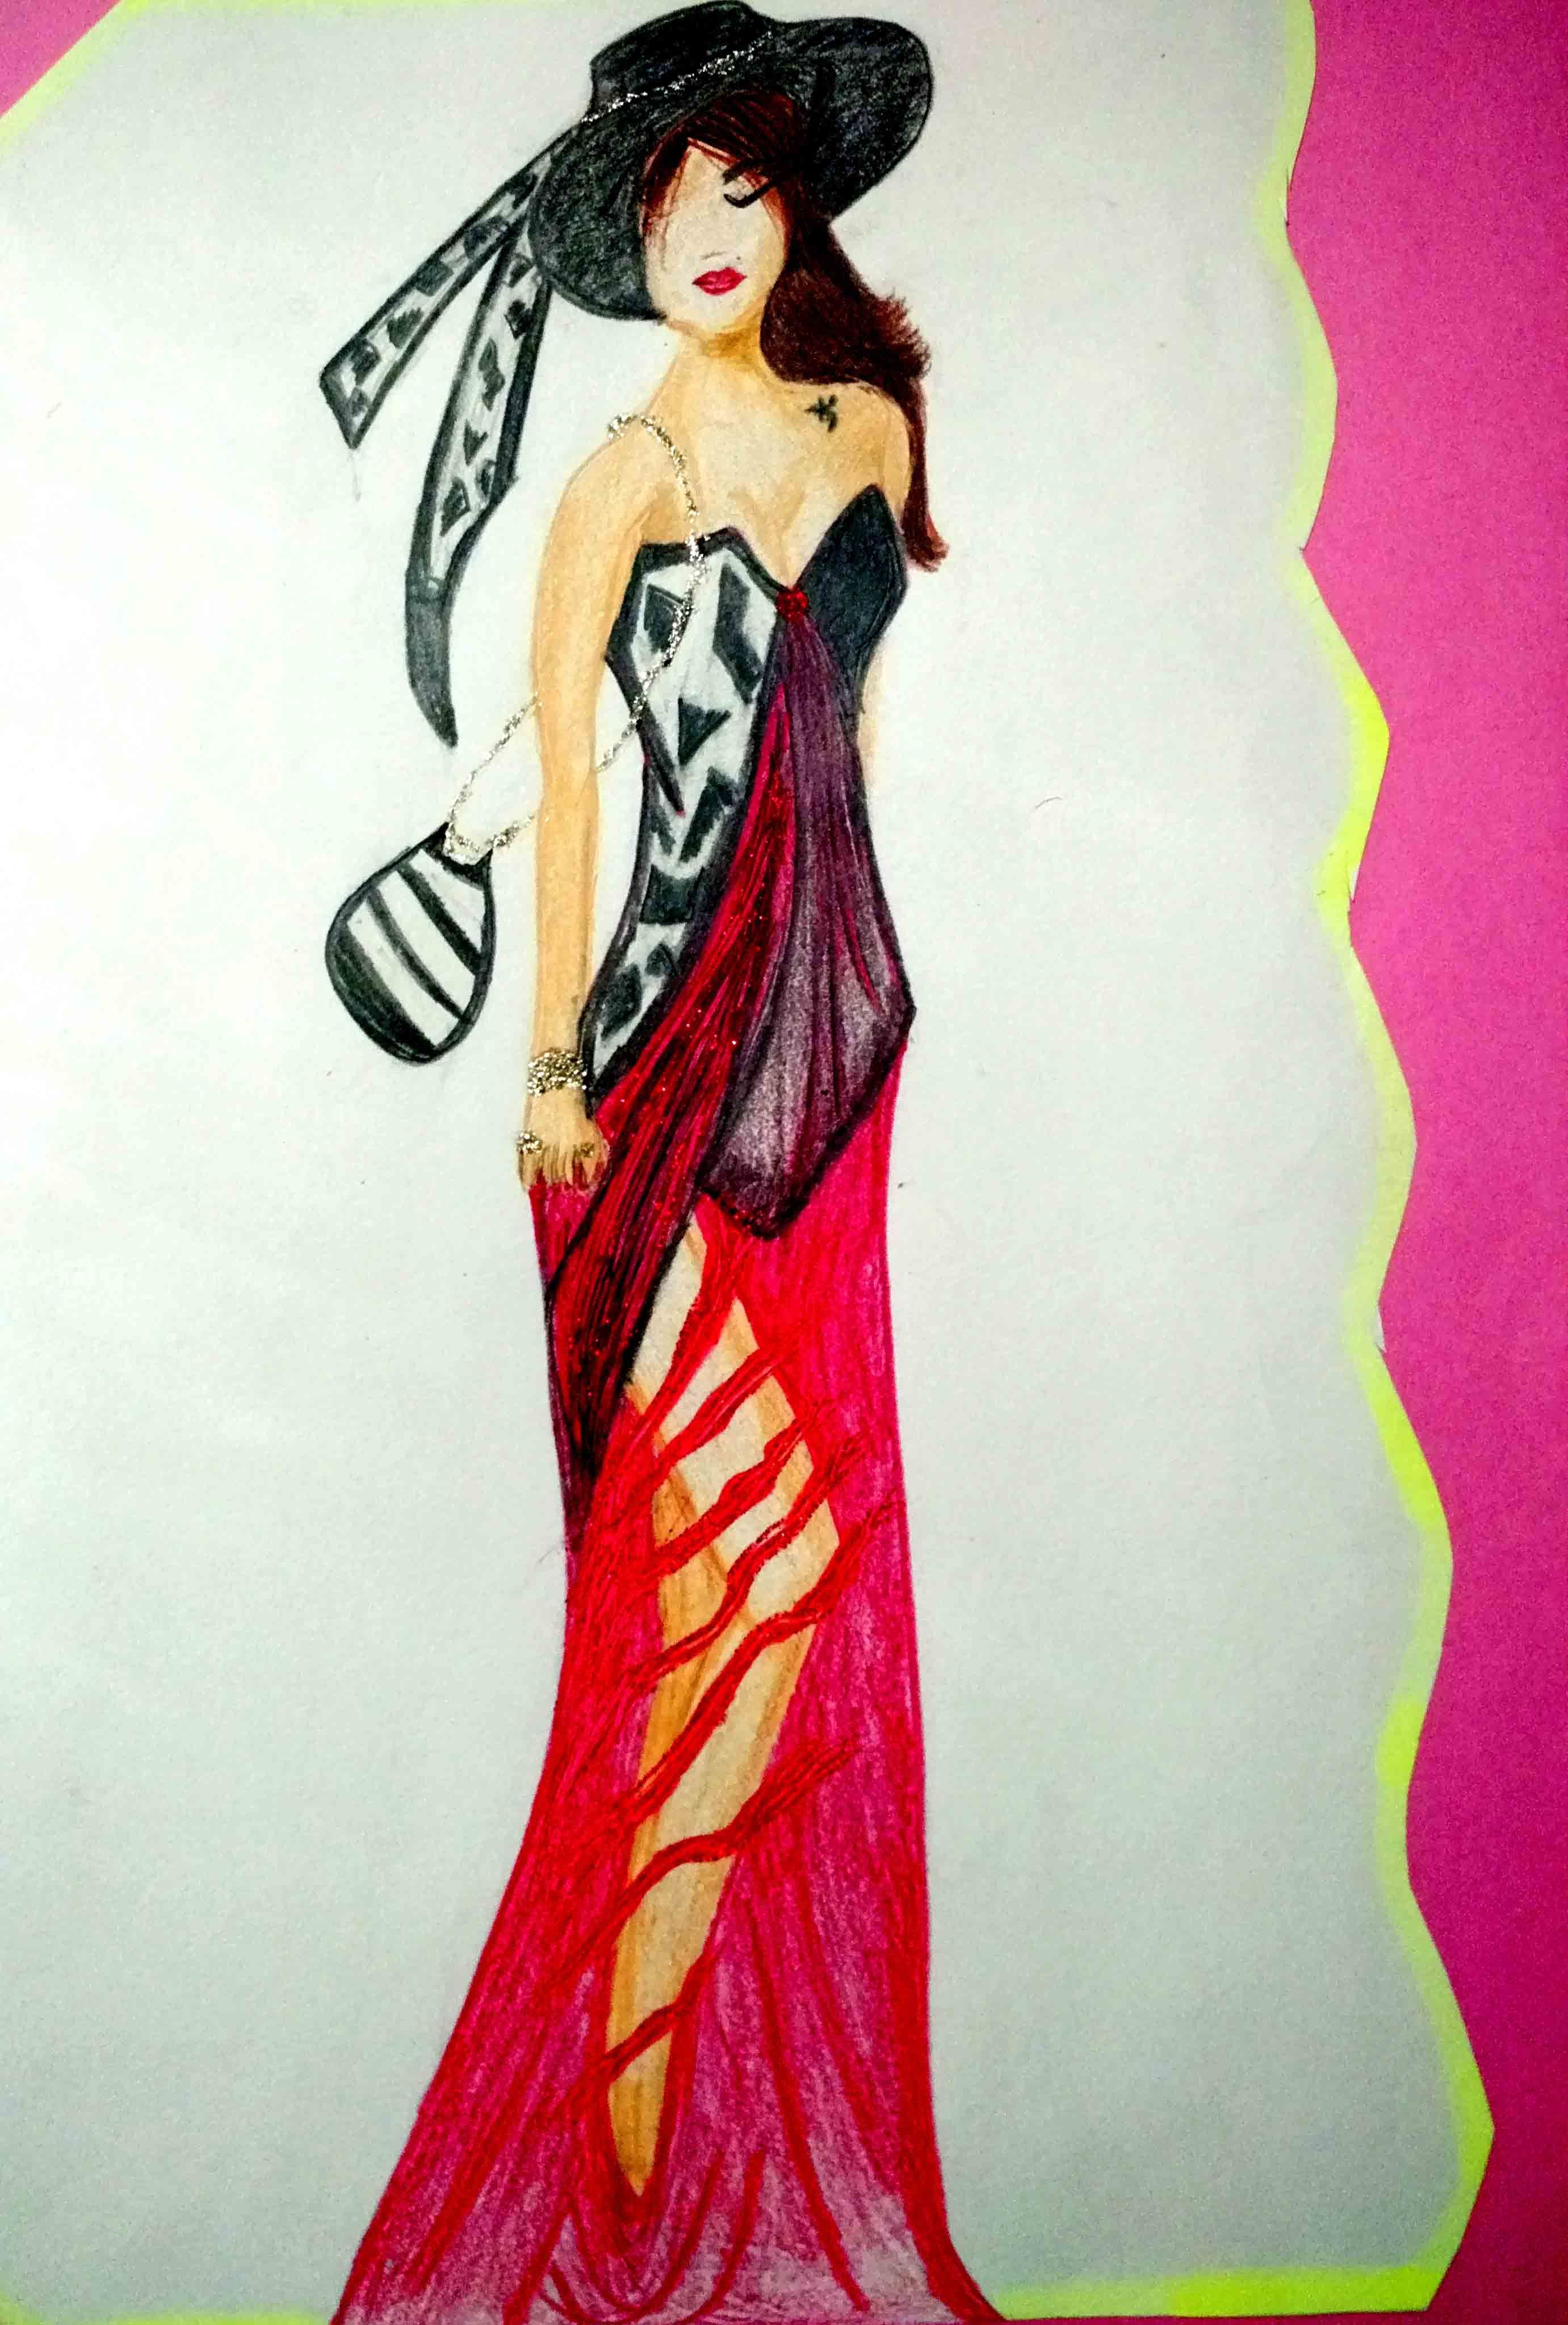 Fashion illustration with sparkles and steadlers